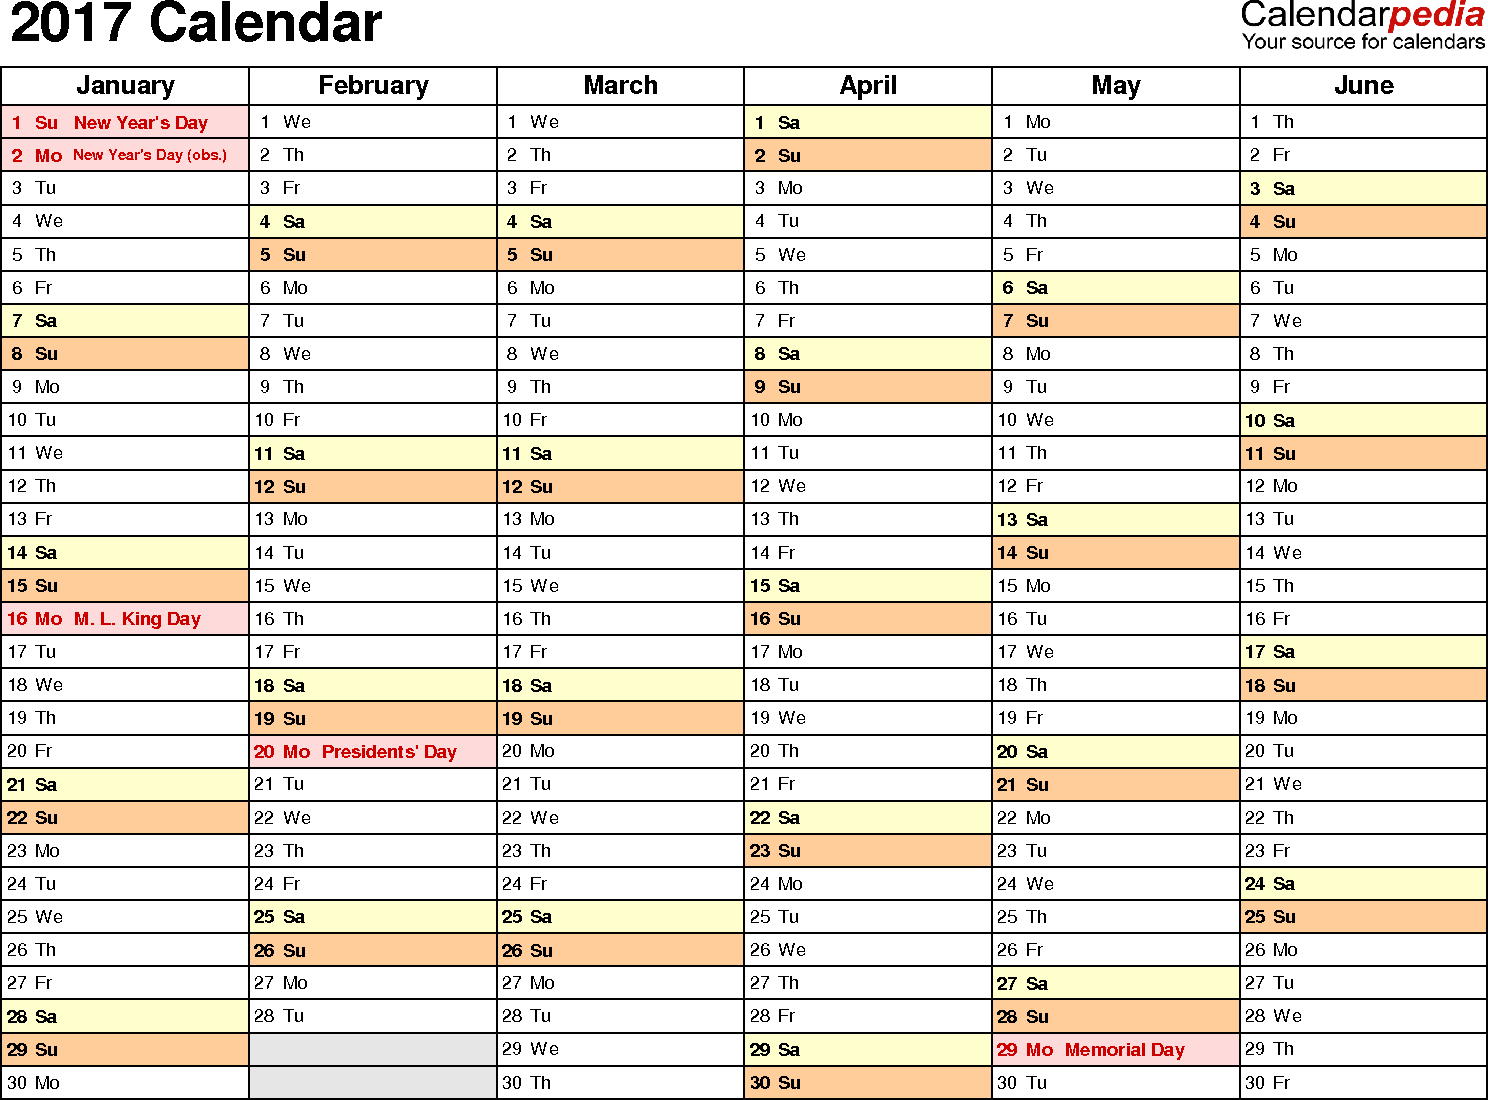 Ediblewildsus  Seductive  Calendar  Download  Free Printable Excel Templates Xls With Marvelous Template   Calendar For Excel Months Horizontally  Pages Landscape Orientation With Lovely Mysql Workbench Import Excel Also Excel Skills Test Free In Addition Open Ods In Excel And Pick From Drop Down List Excel  As Well As Mrp Excel Additionally Excel Check Spelling From Calendarpediacom With Ediblewildsus  Marvelous  Calendar  Download  Free Printable Excel Templates Xls With Lovely Template   Calendar For Excel Months Horizontally  Pages Landscape Orientation And Seductive Mysql Workbench Import Excel Also Excel Skills Test Free In Addition Open Ods In Excel From Calendarpediacom